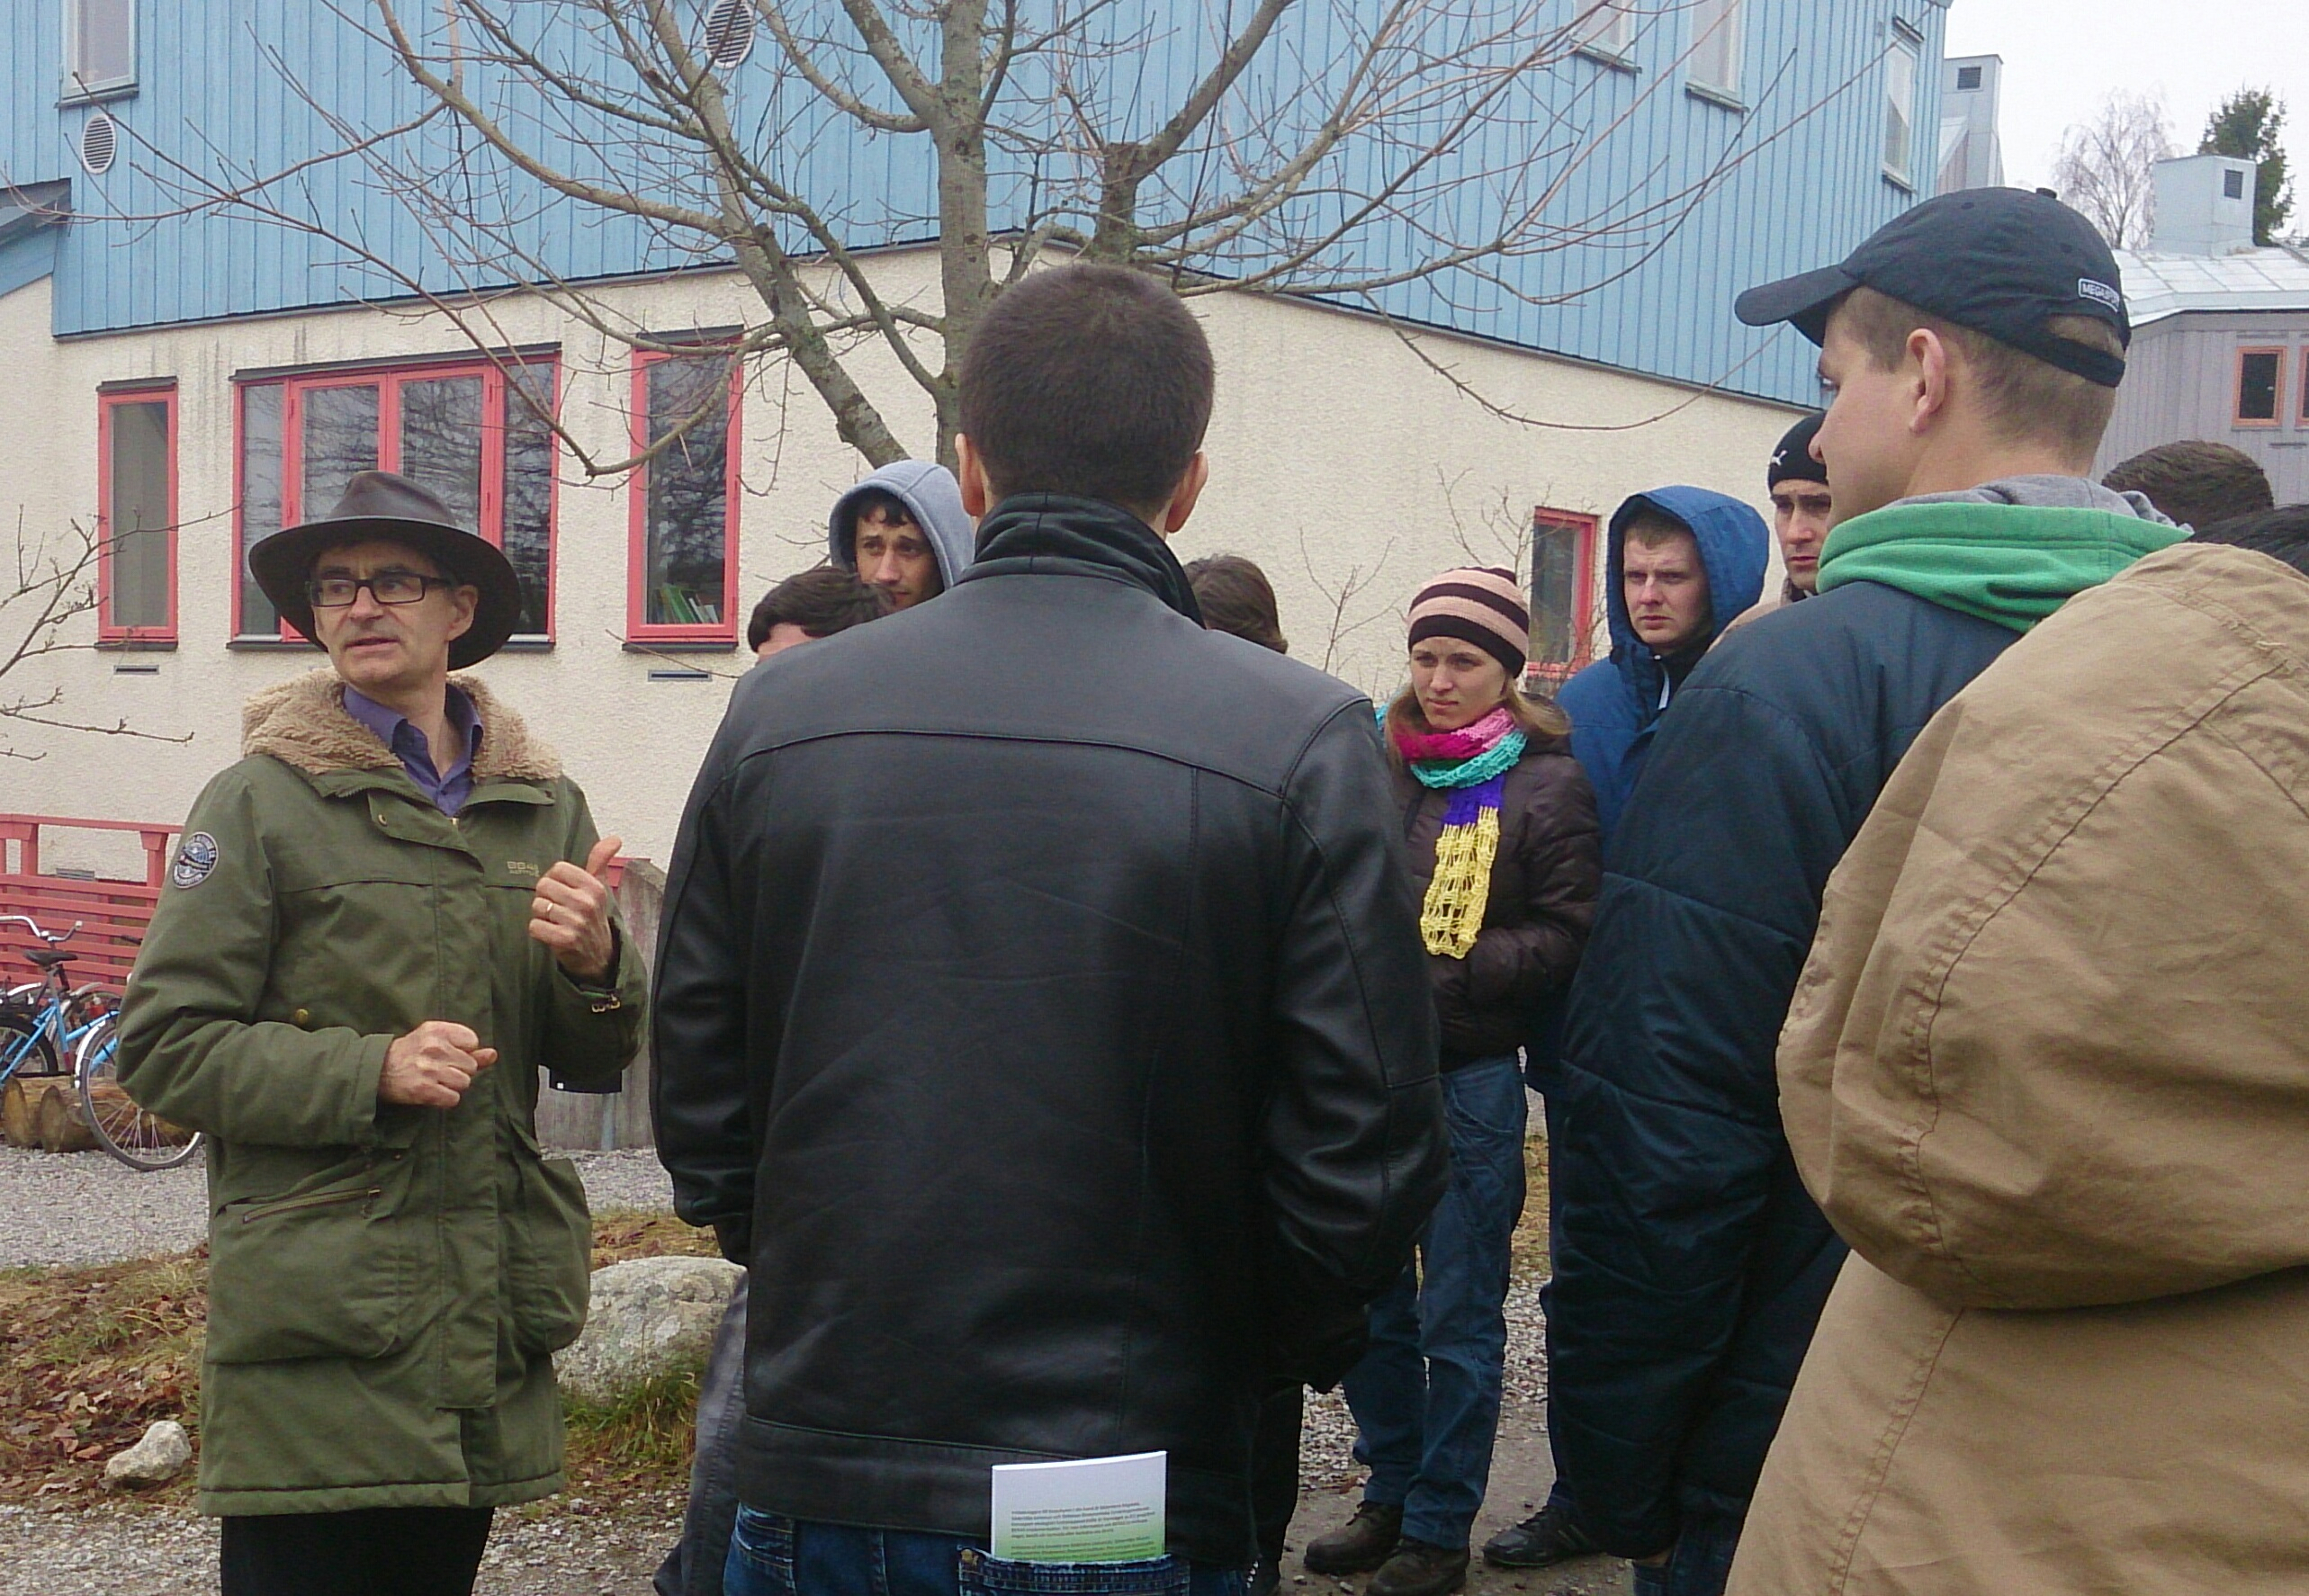 Hans von Essen take a walk with all trainees and showing Beras International outside.